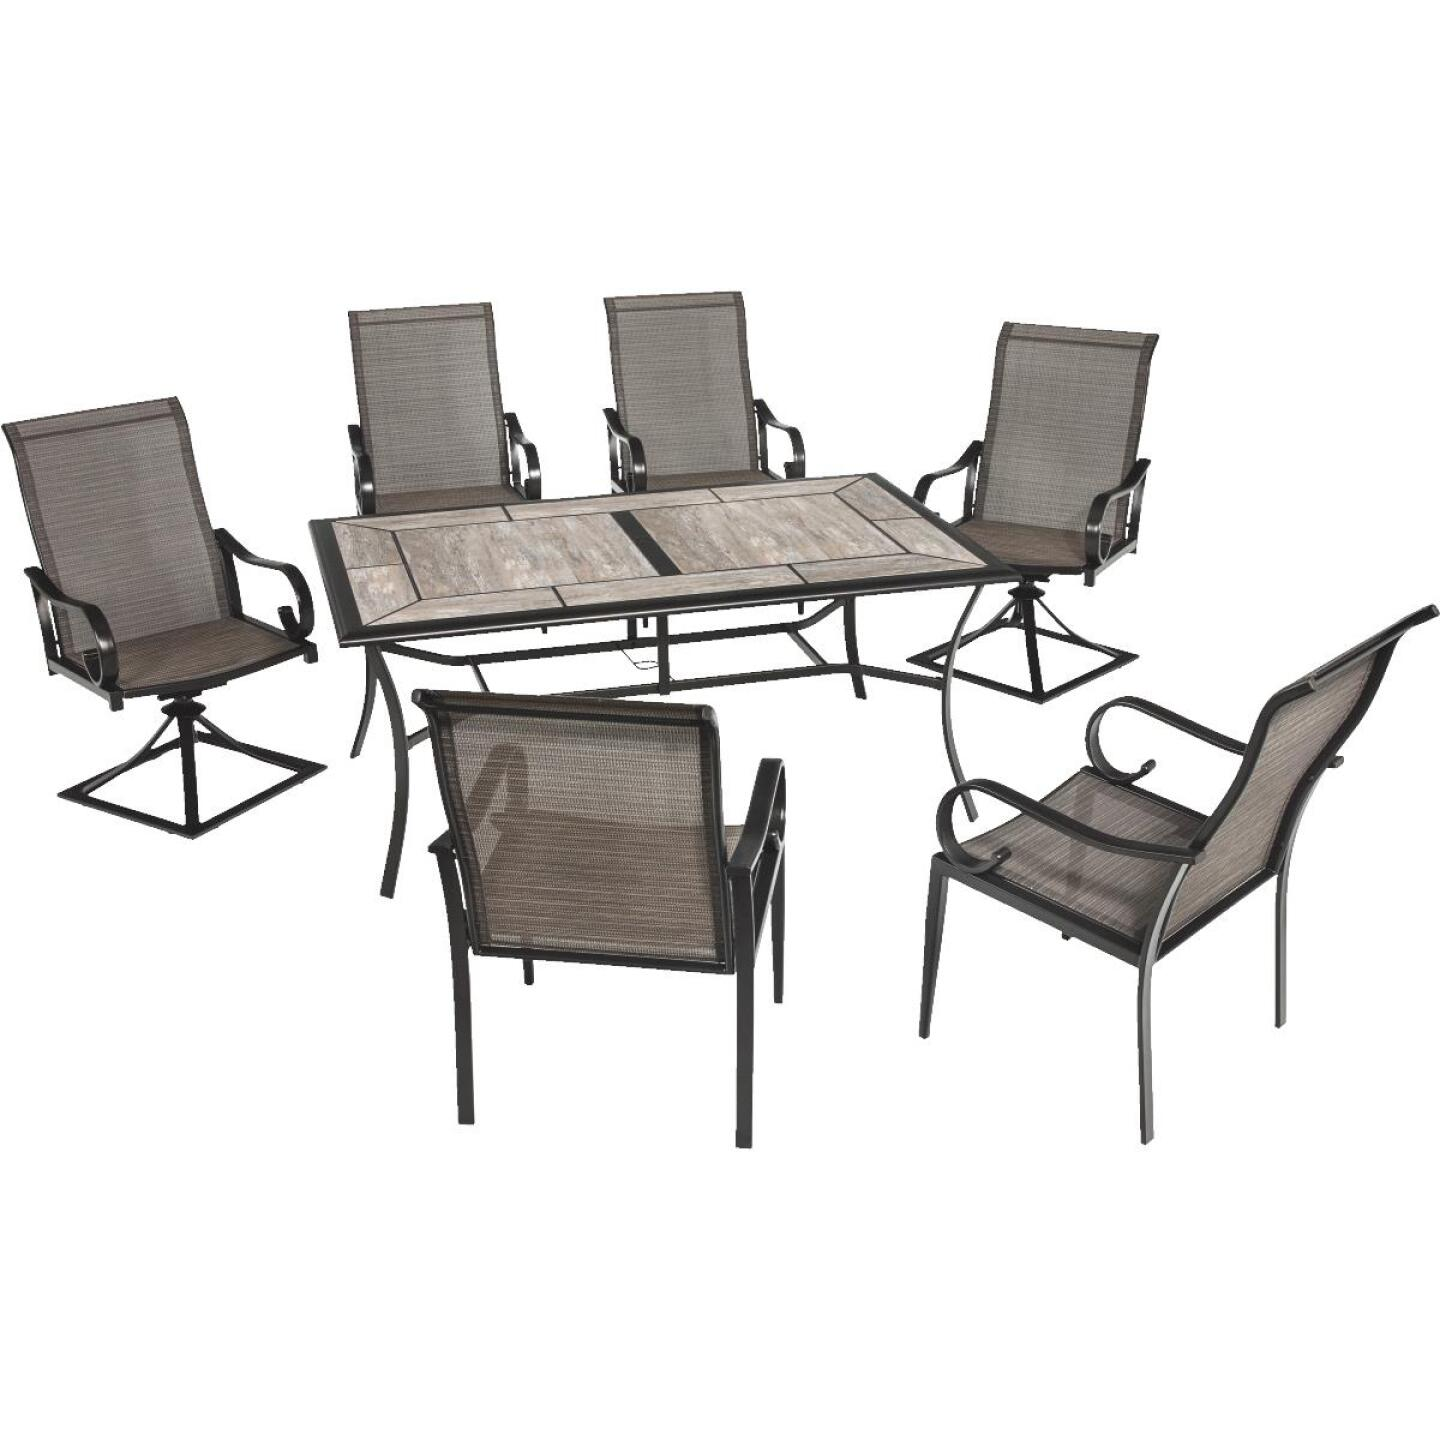 Outdoor Expressions Berkshire 7-Piece Dining Set Image 79